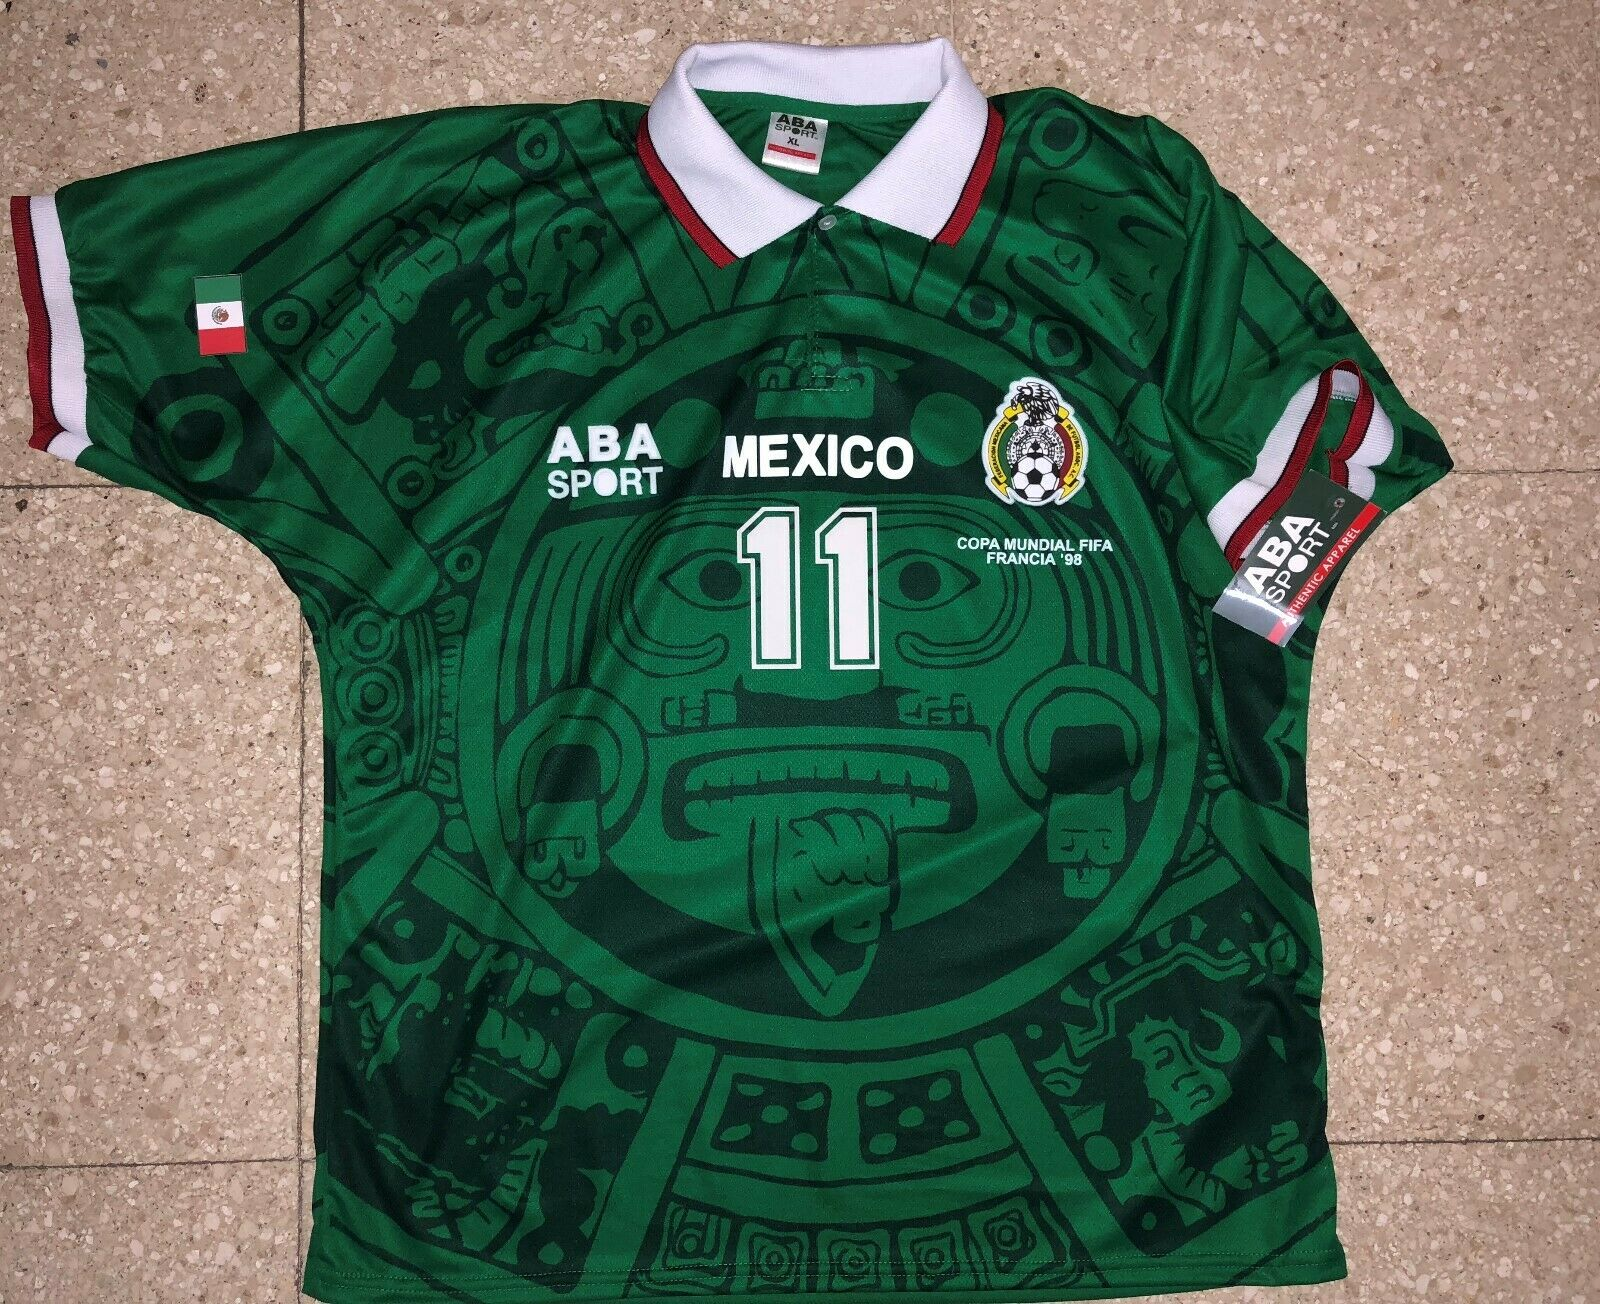 MEXICO HOME 98 Cuauhtemoc wit WC 98, afmeting XL, AUTHENTIC SHIR ABA SPORT